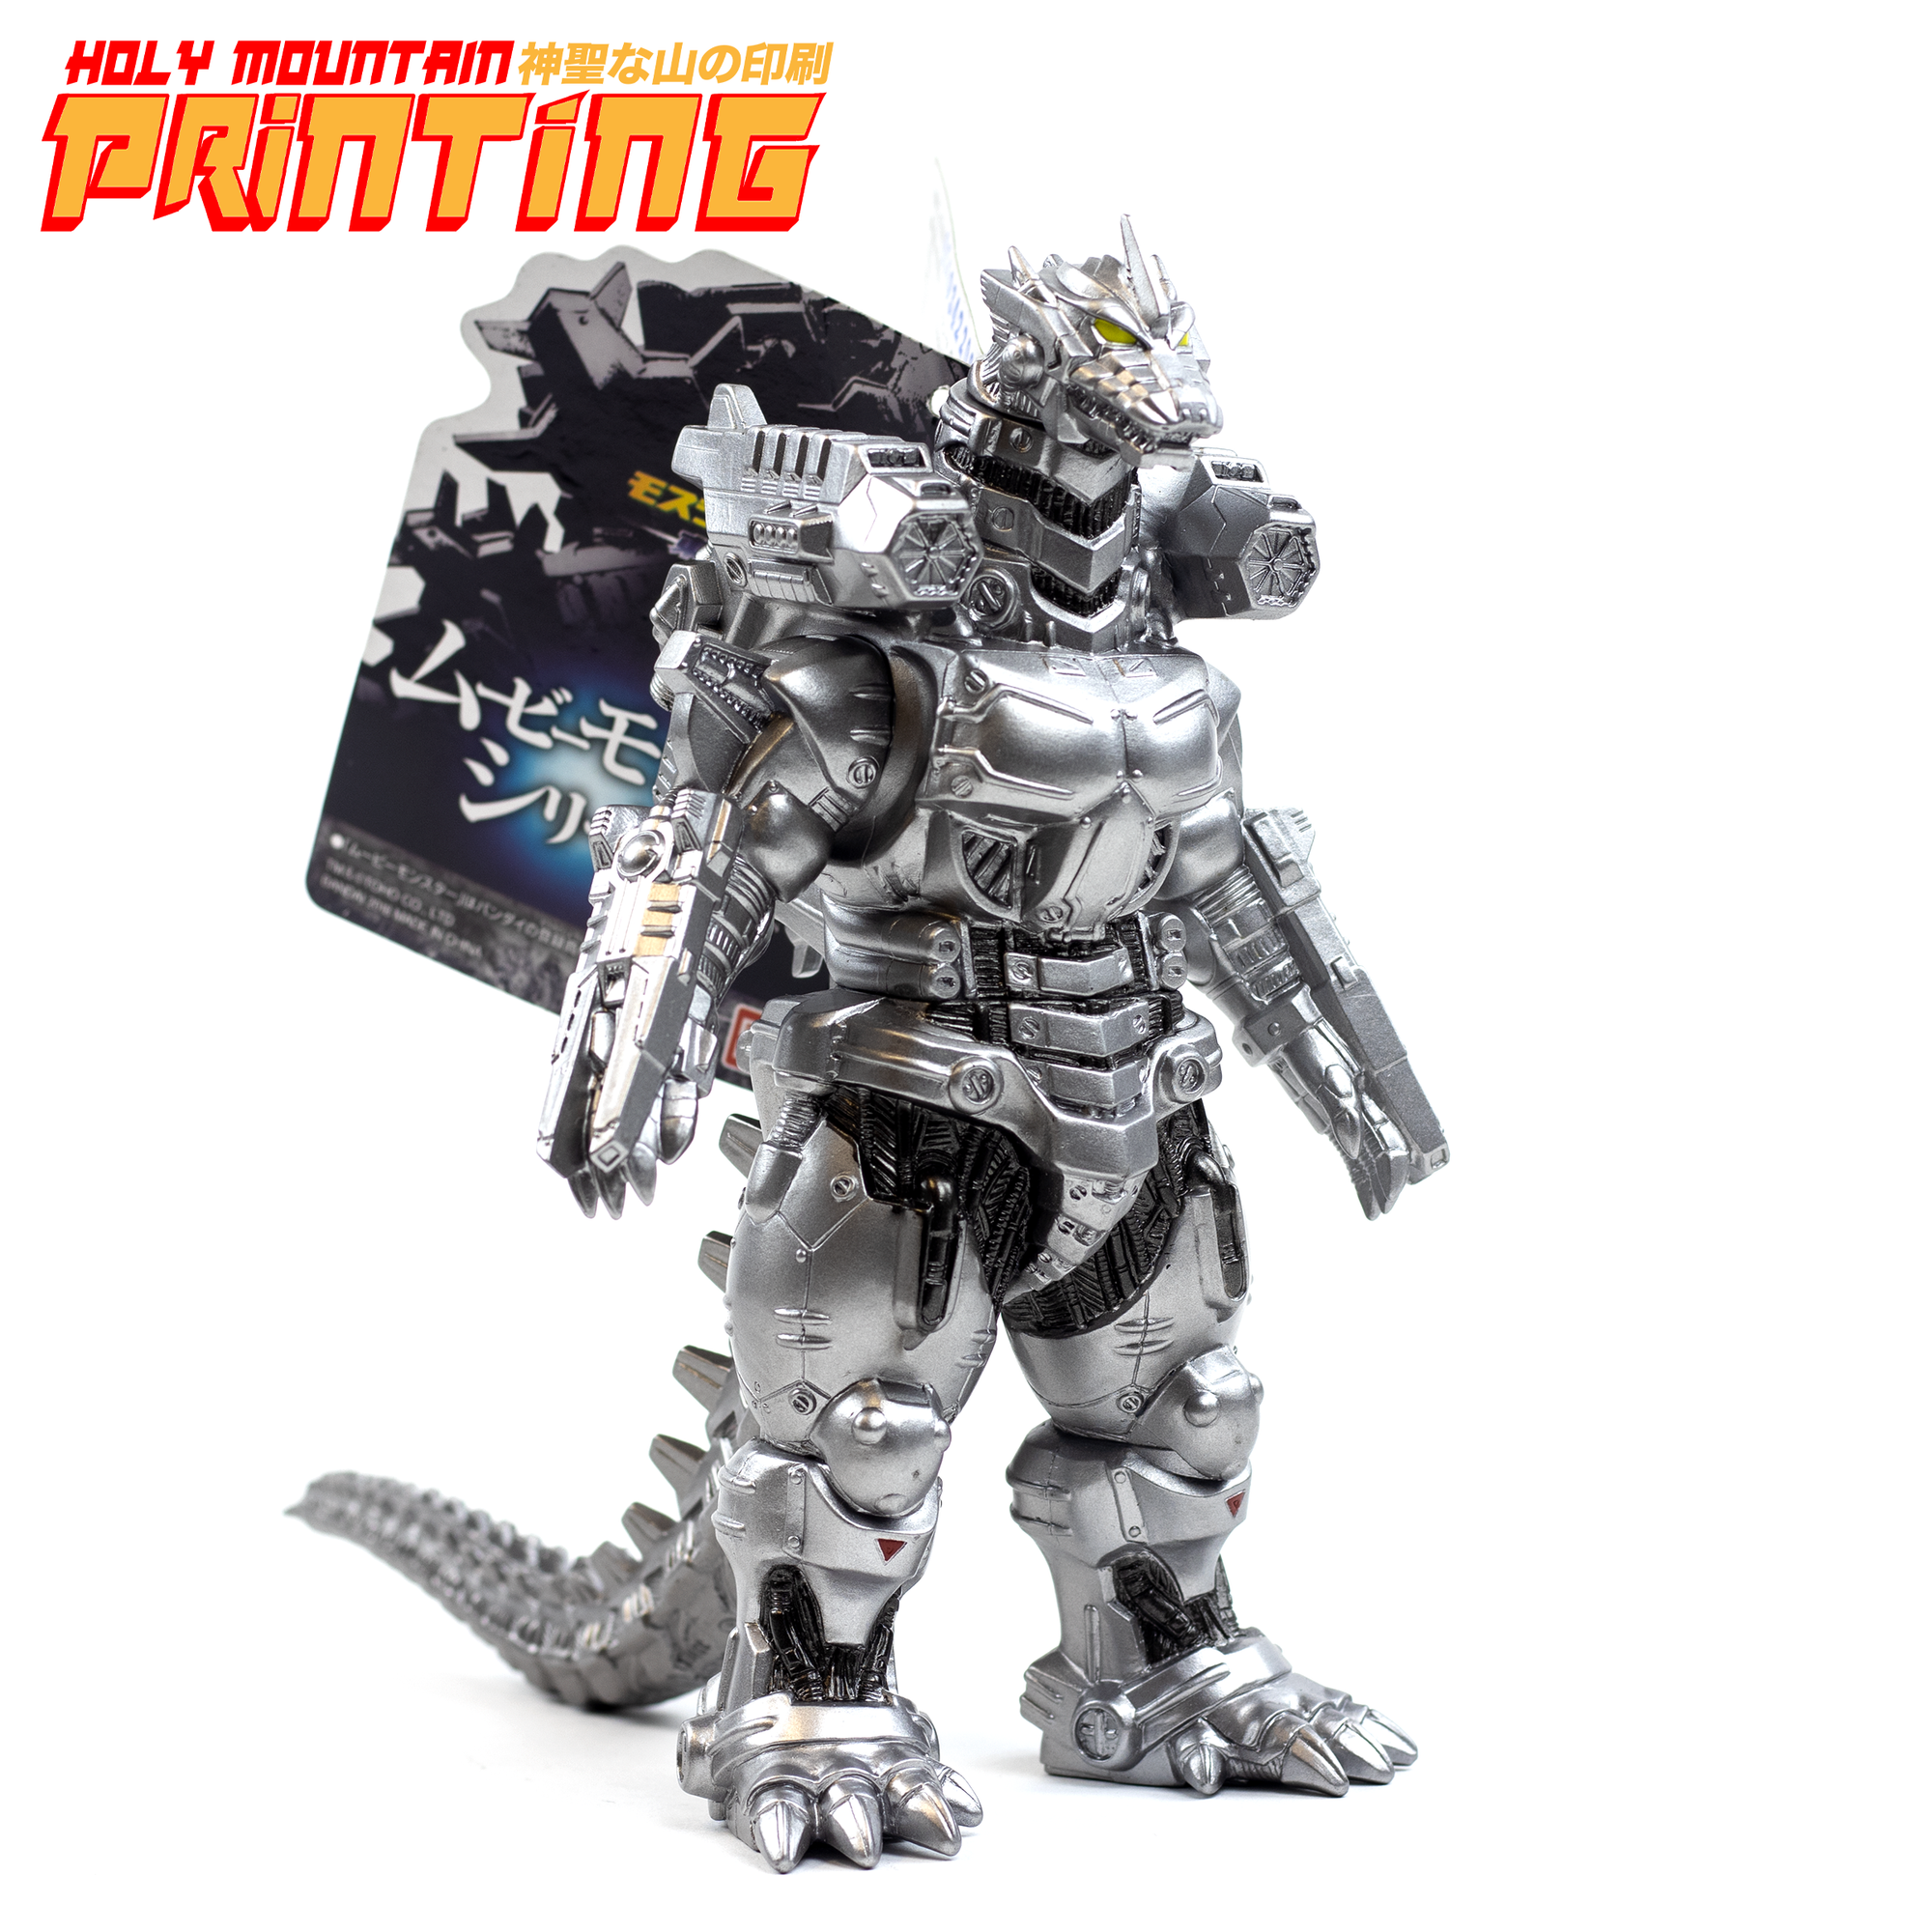 BANDAI - MOVIE MONSTER SERIES: MECHA GODZILLA 2004 (FULL WEAPON) FIGURE